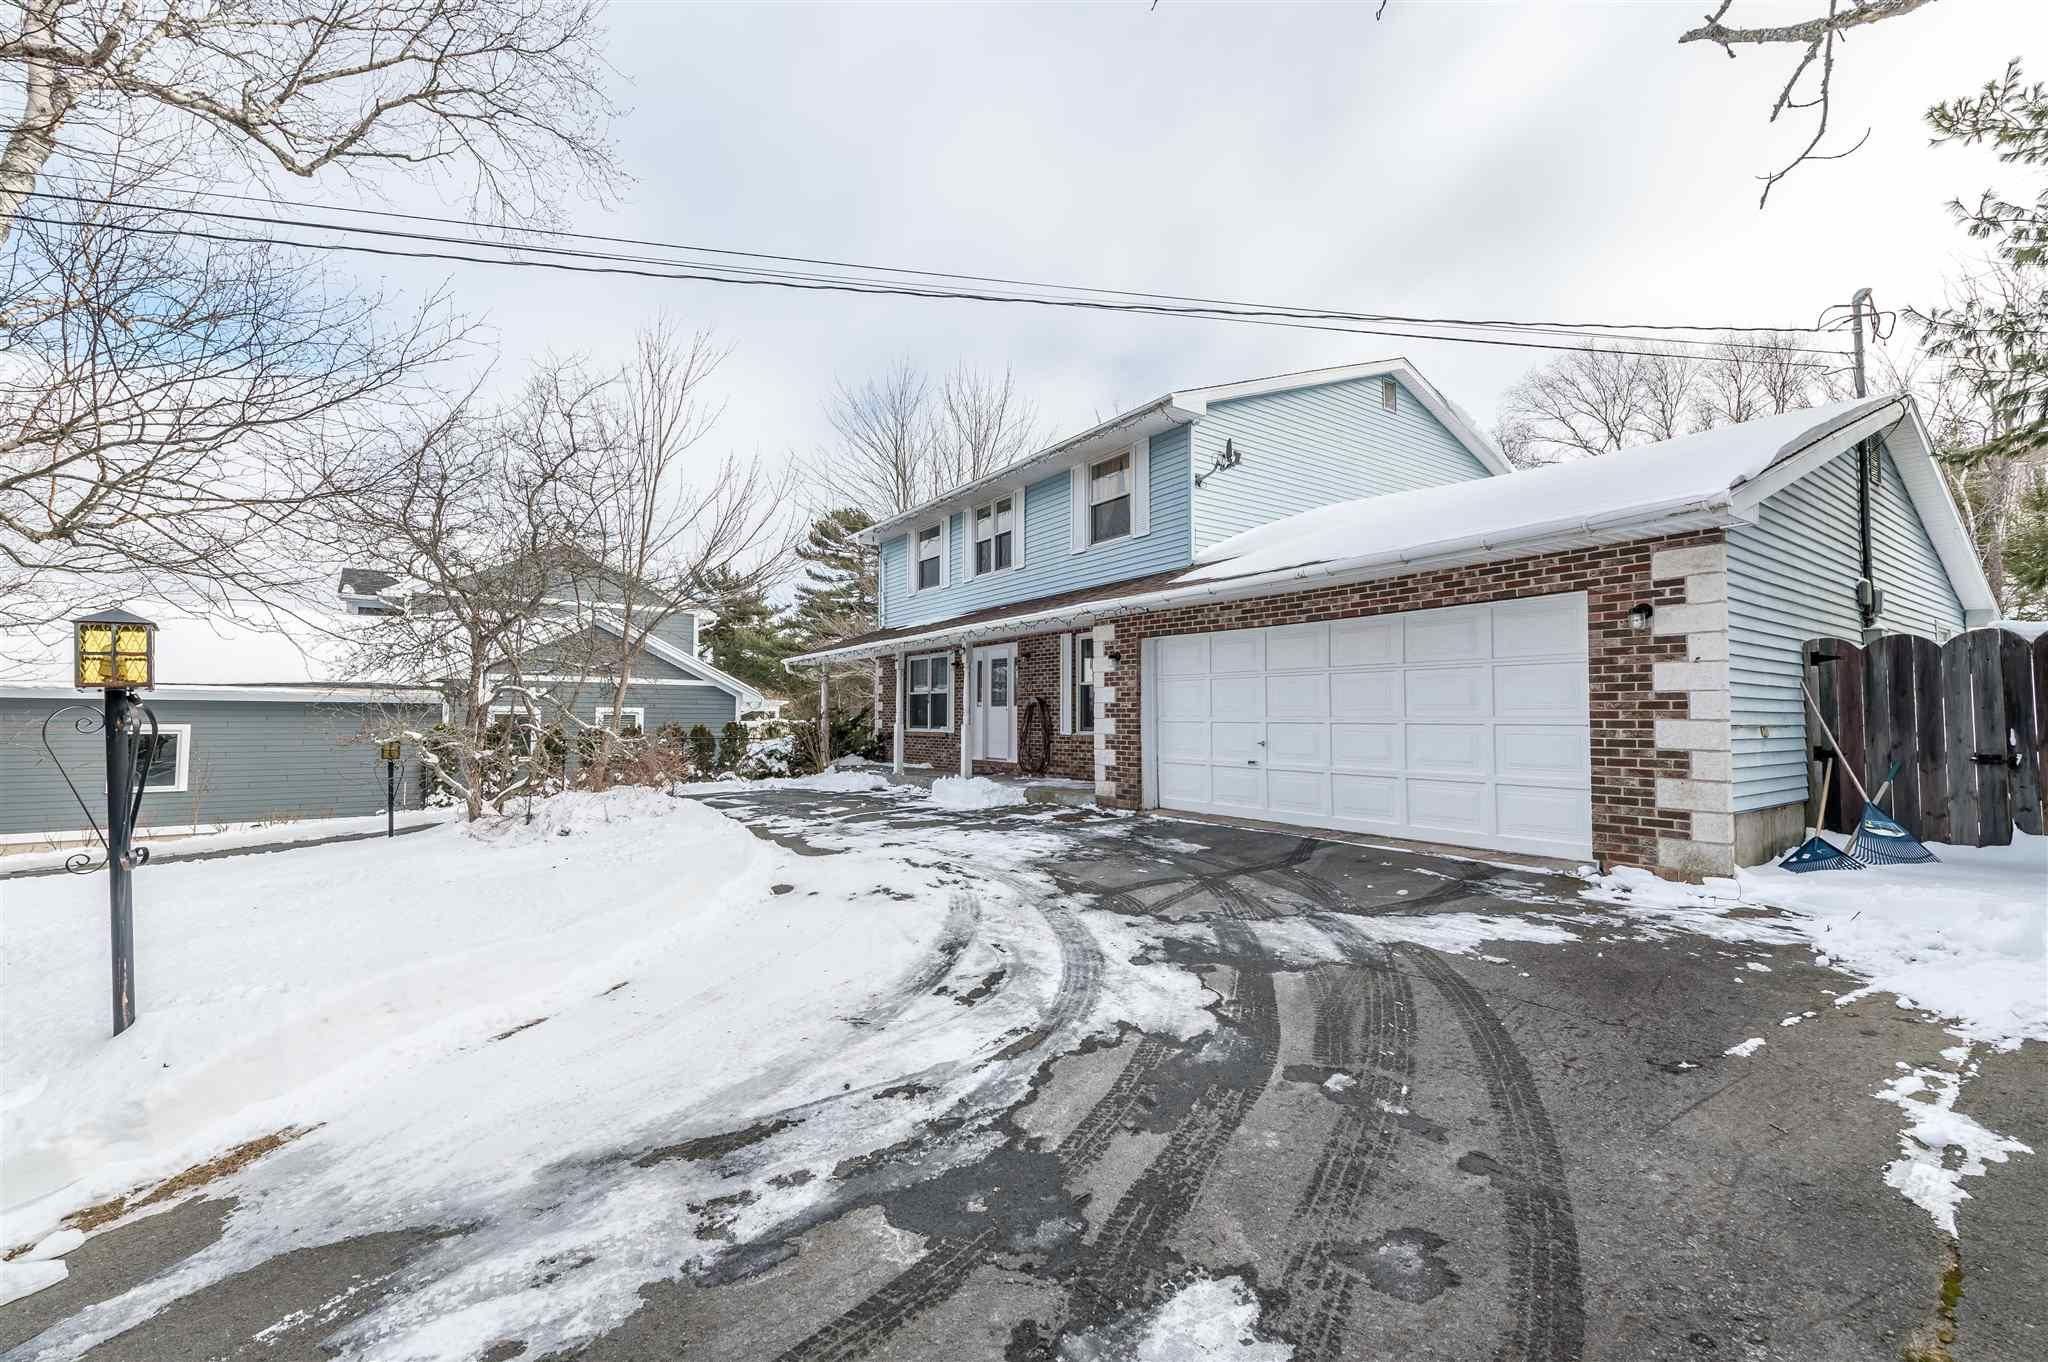 Main Photo: 26 Millview Avenue in Bedford: 20-Bedford Residential for sale (Halifax-Dartmouth)  : MLS®# 202102712